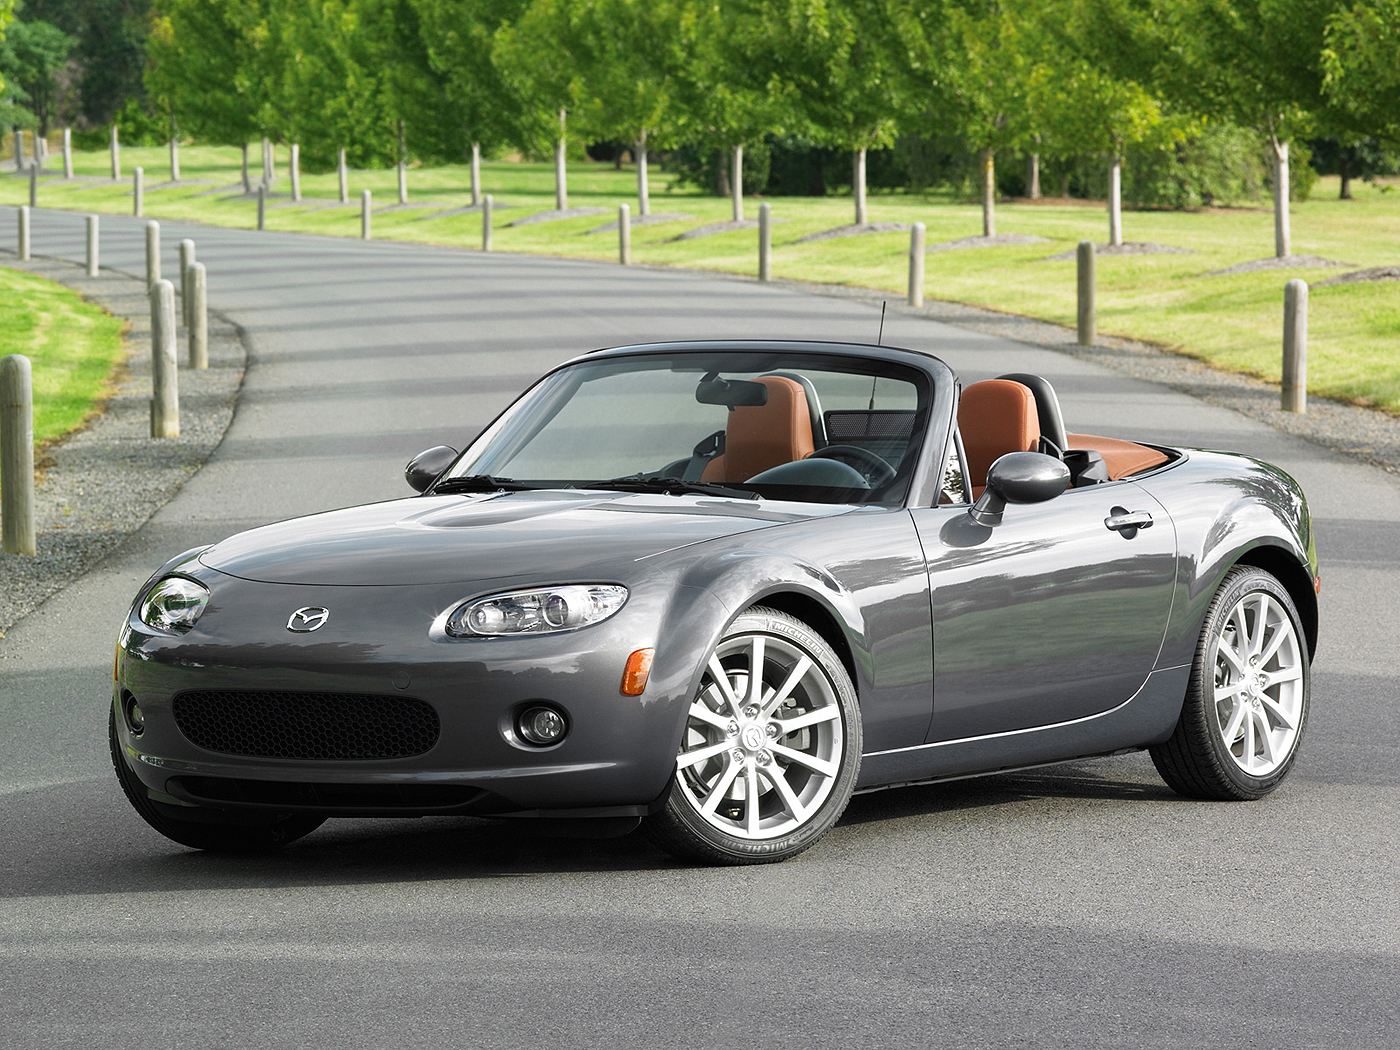 new cars update mazda mx5. Black Bedroom Furniture Sets. Home Design Ideas